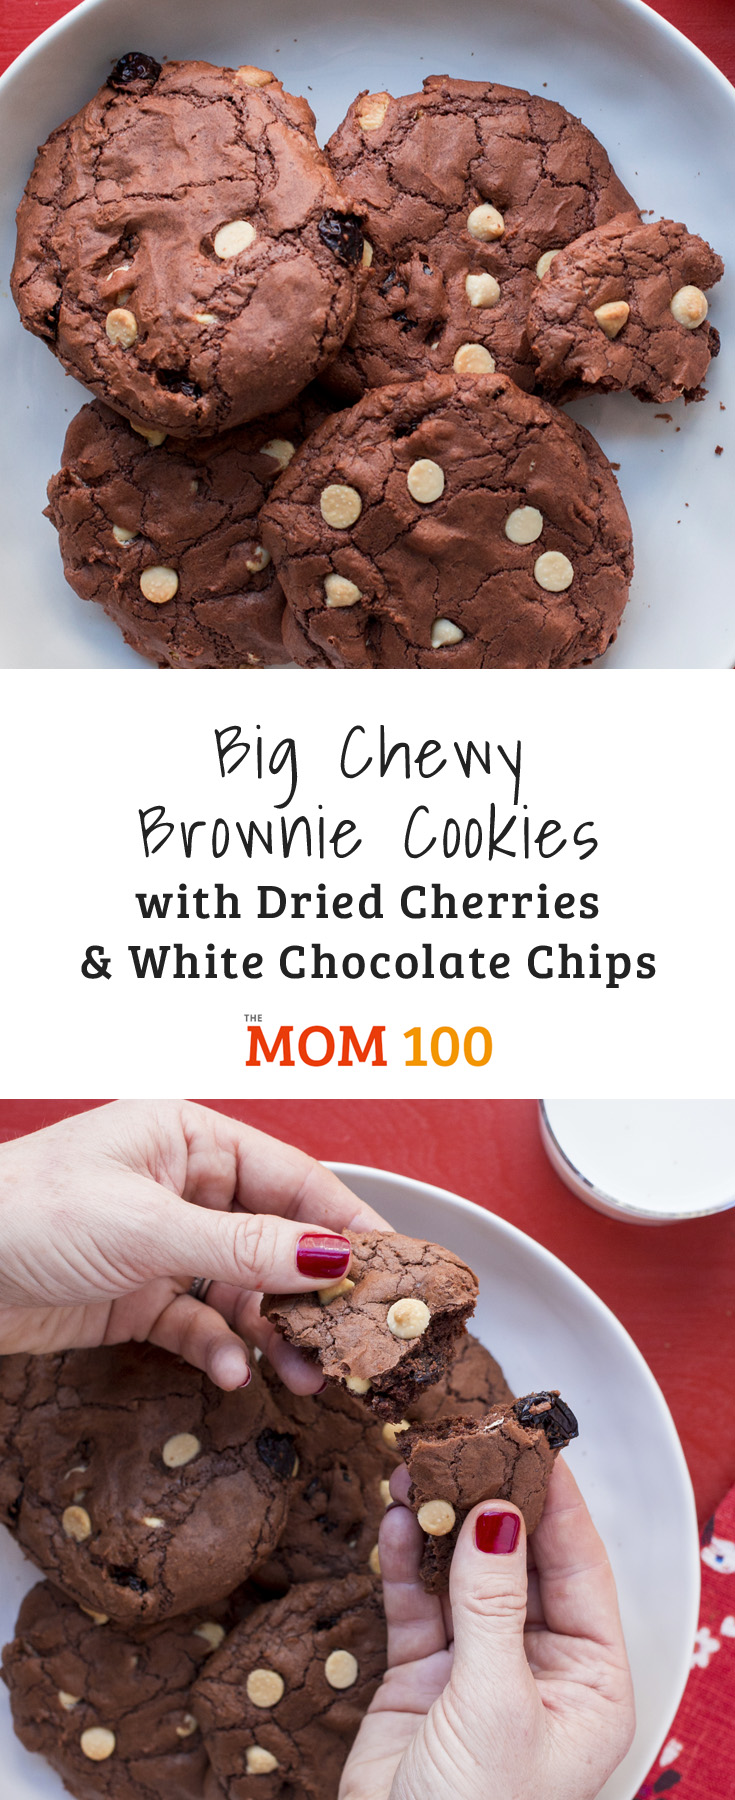 Dried cherries add sweet-tart chewiness, and white chocolate add texture to these Big Chewy Brownie Cookies with Dried Cherries and White Chocolate Chips.